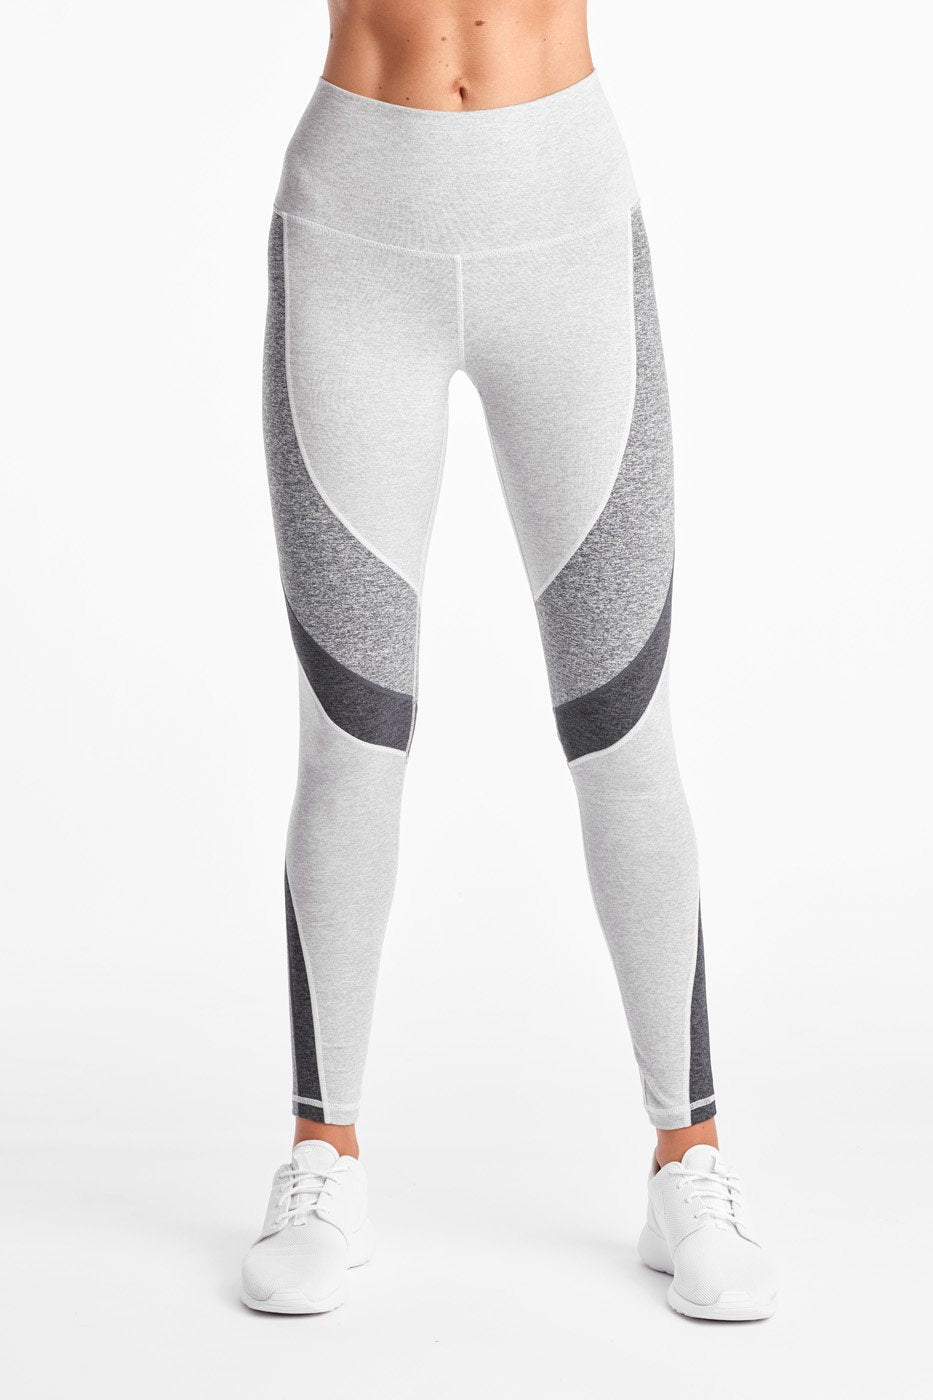 Heather Mix Tight - Heather Grey - Final Sale